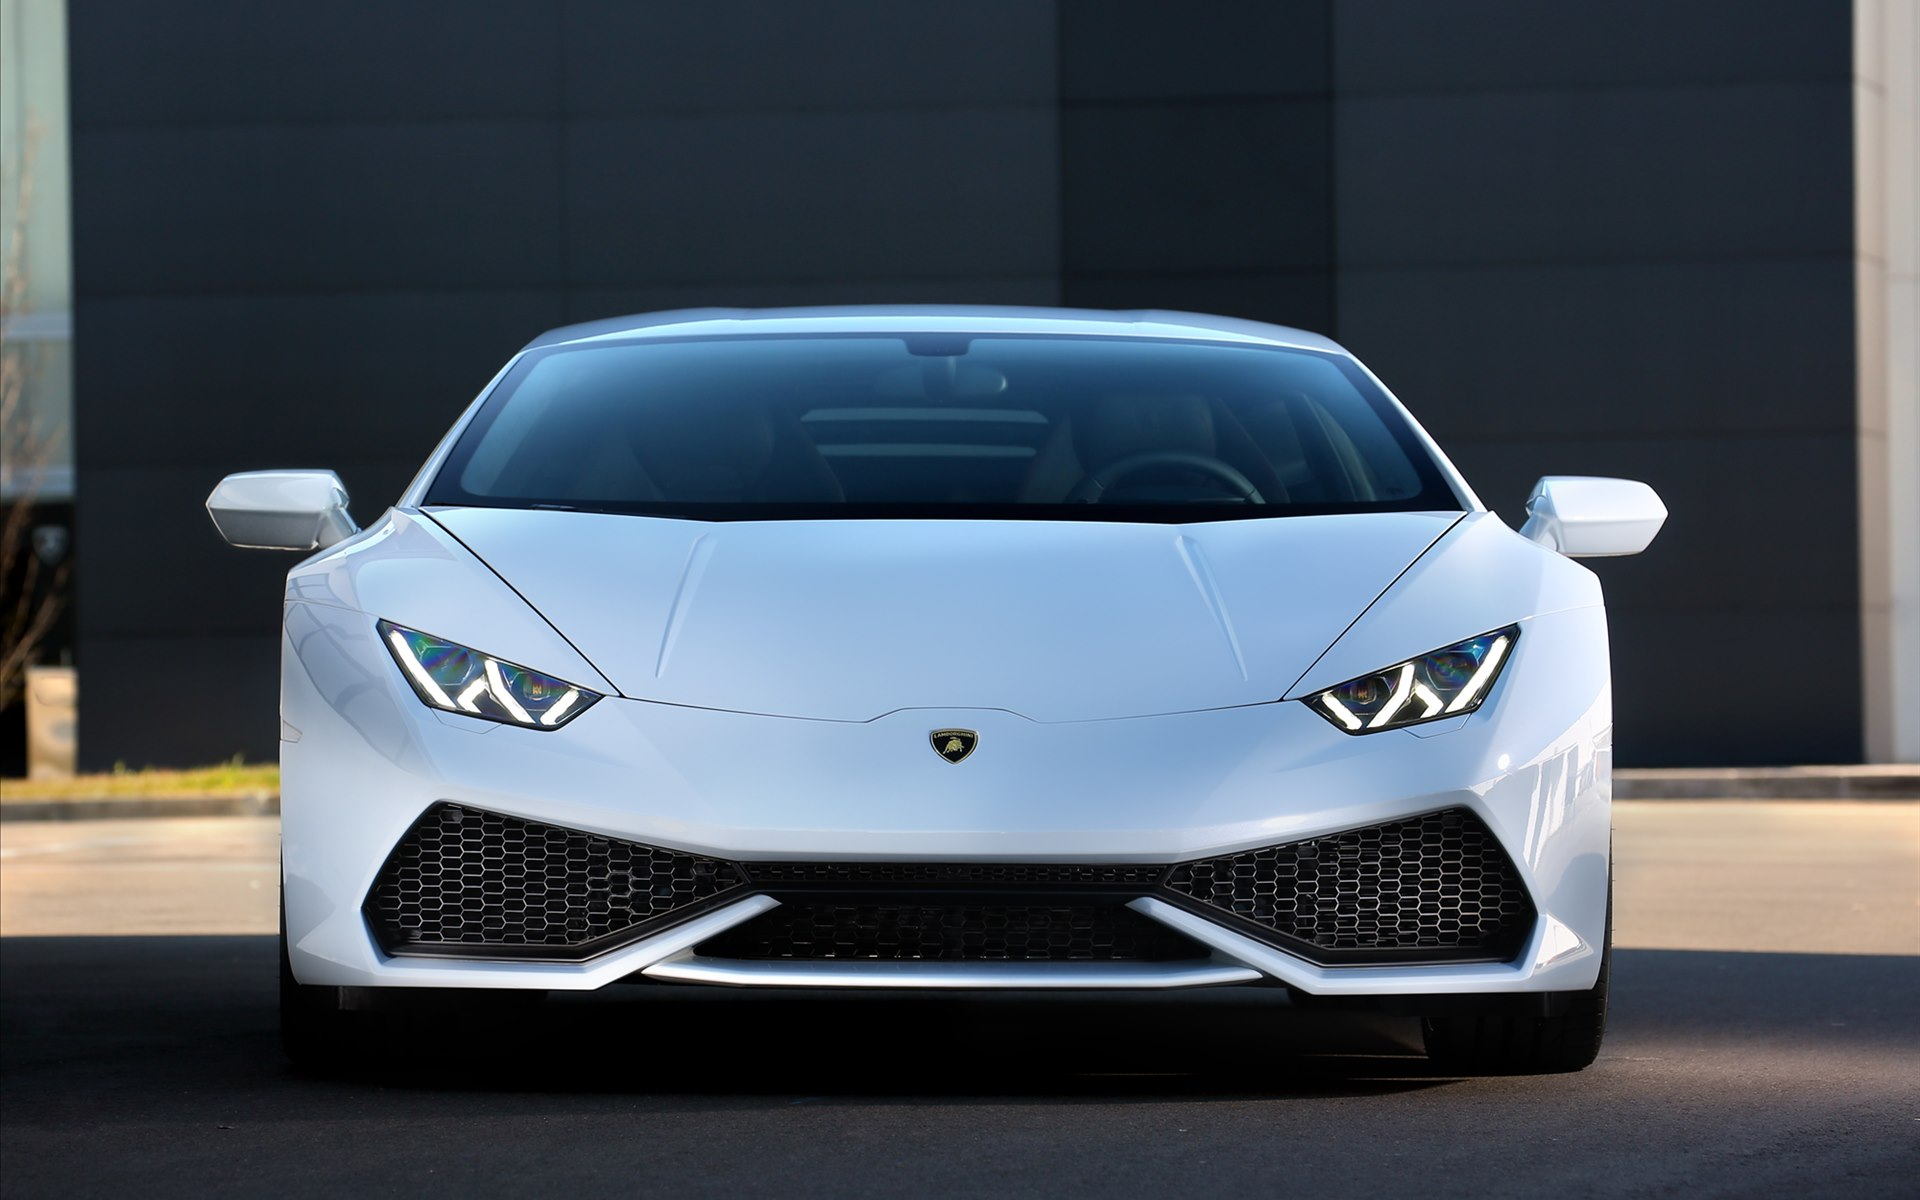 2015 lamborghini huracan lp 610 4 wallpaper hd car wallpapers - Lamborghini Huracan Wallpaper